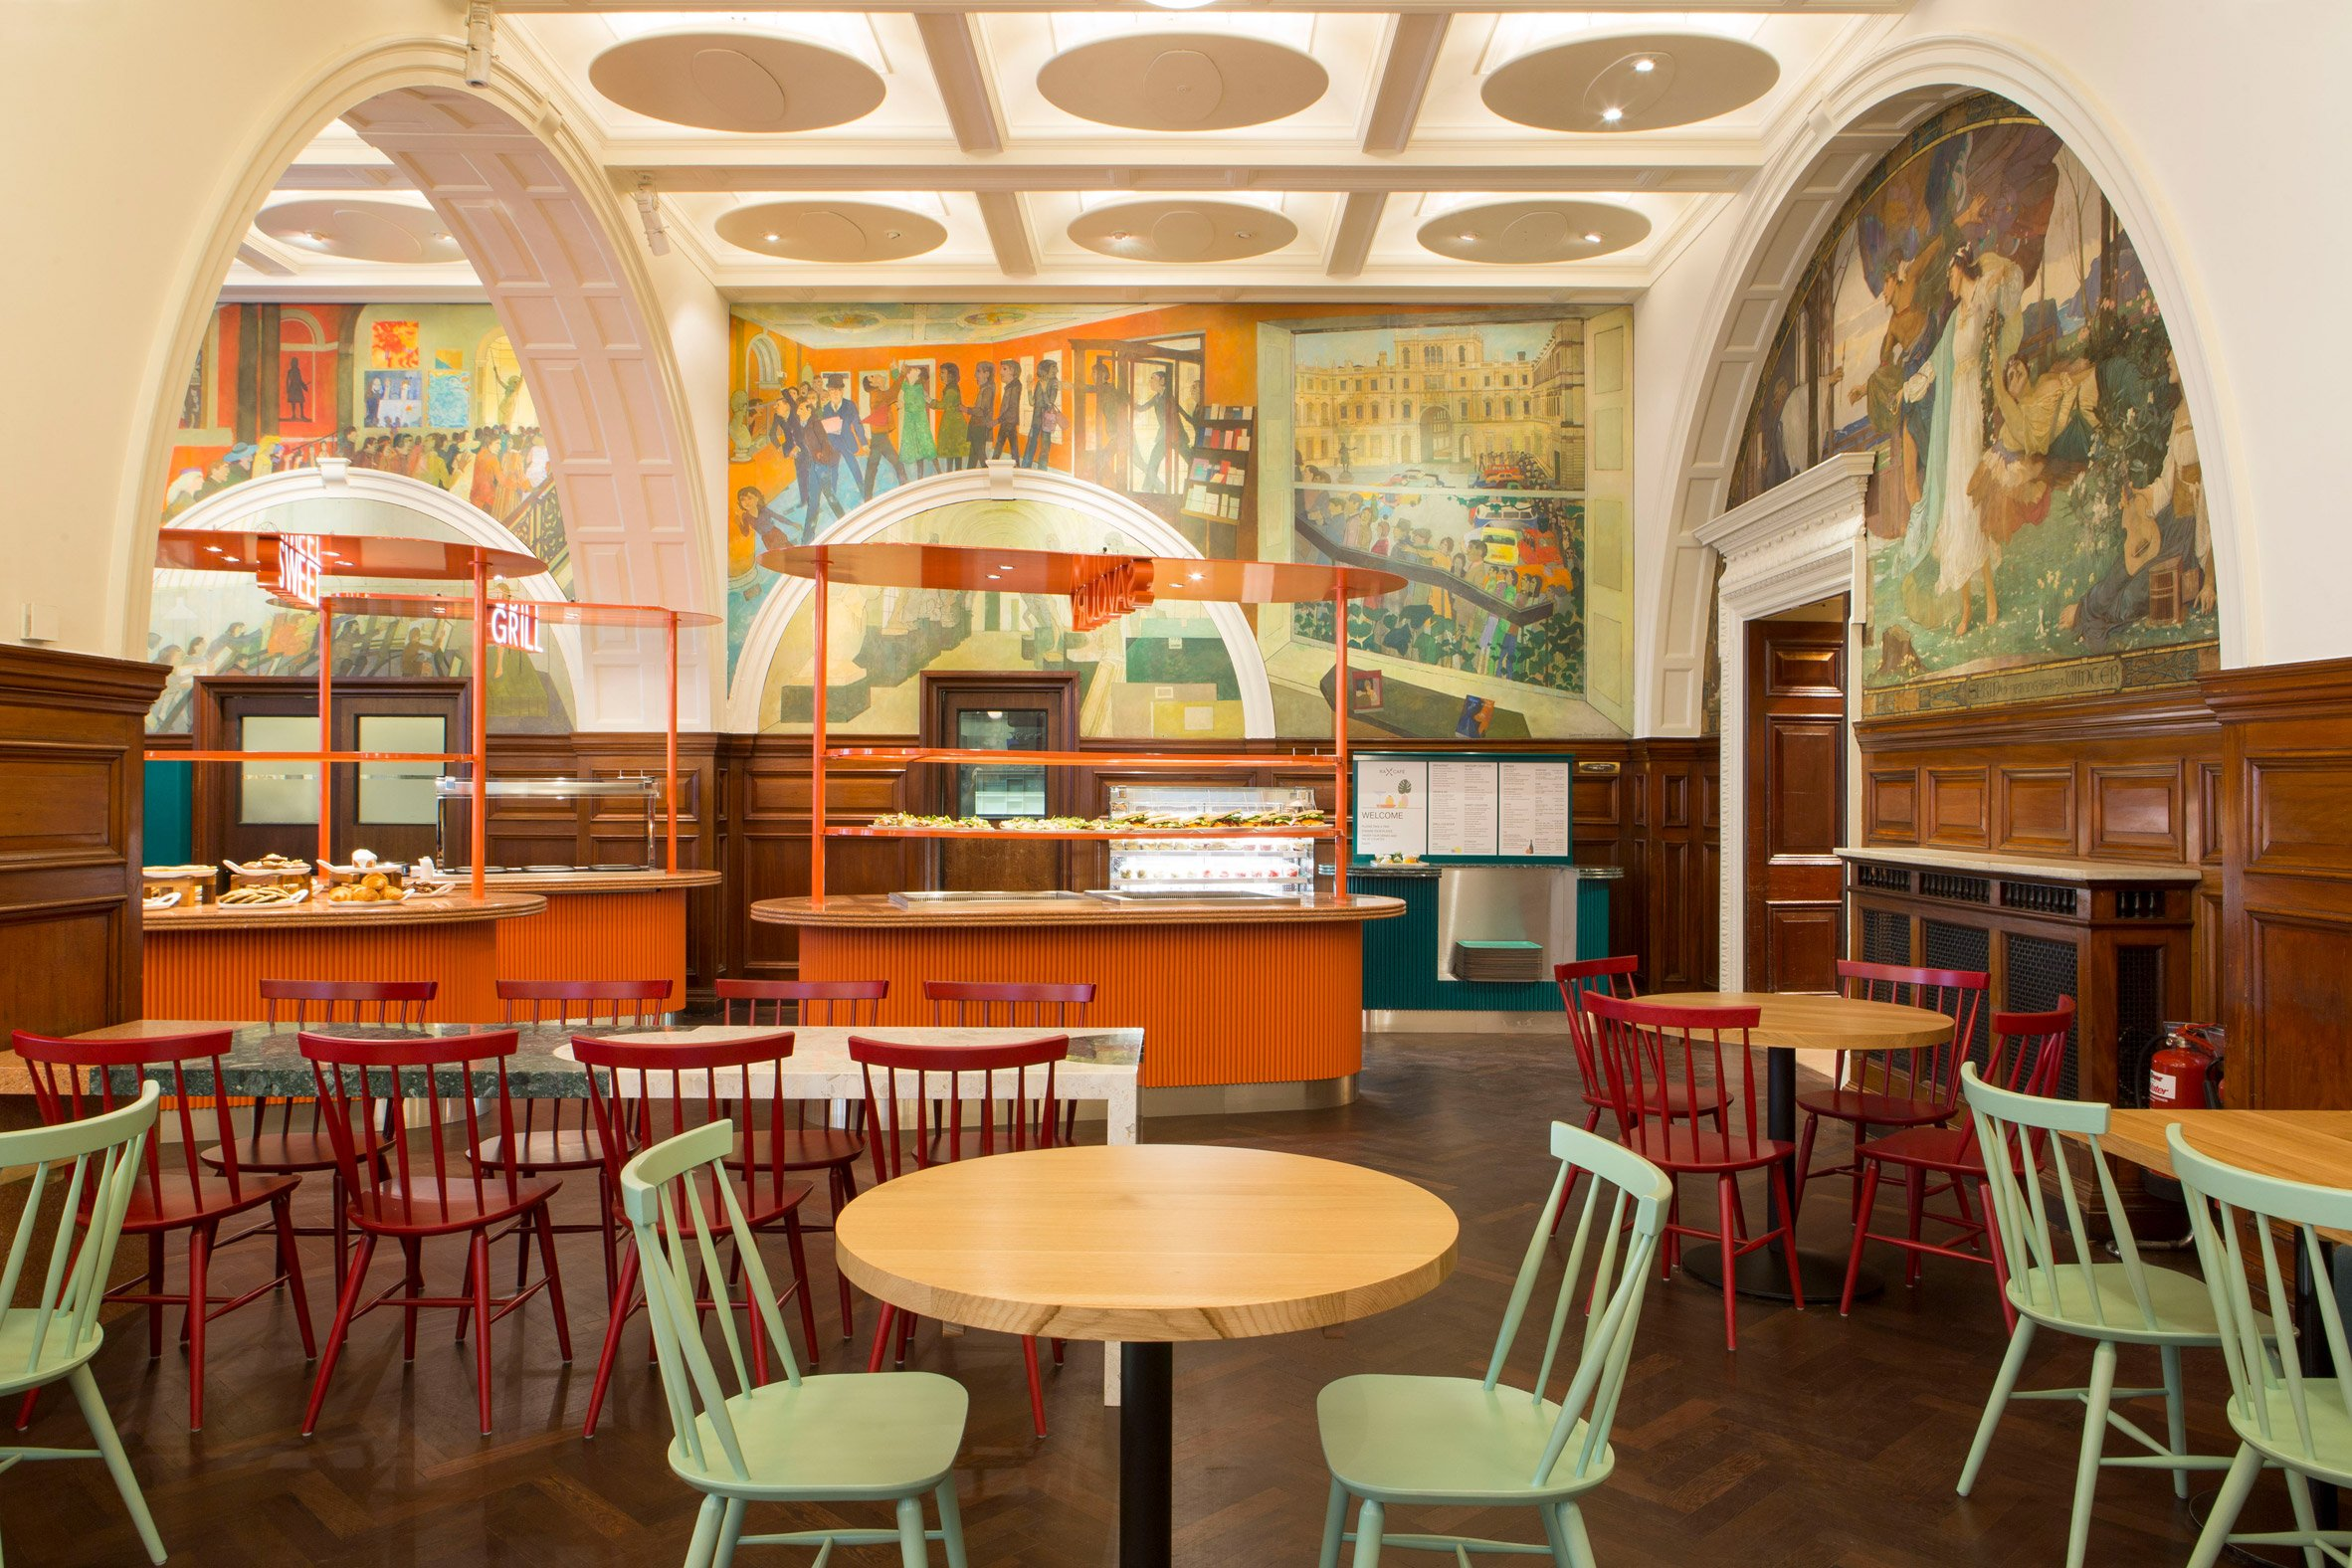 Royal Academy of Arts cafe by Transit Studio